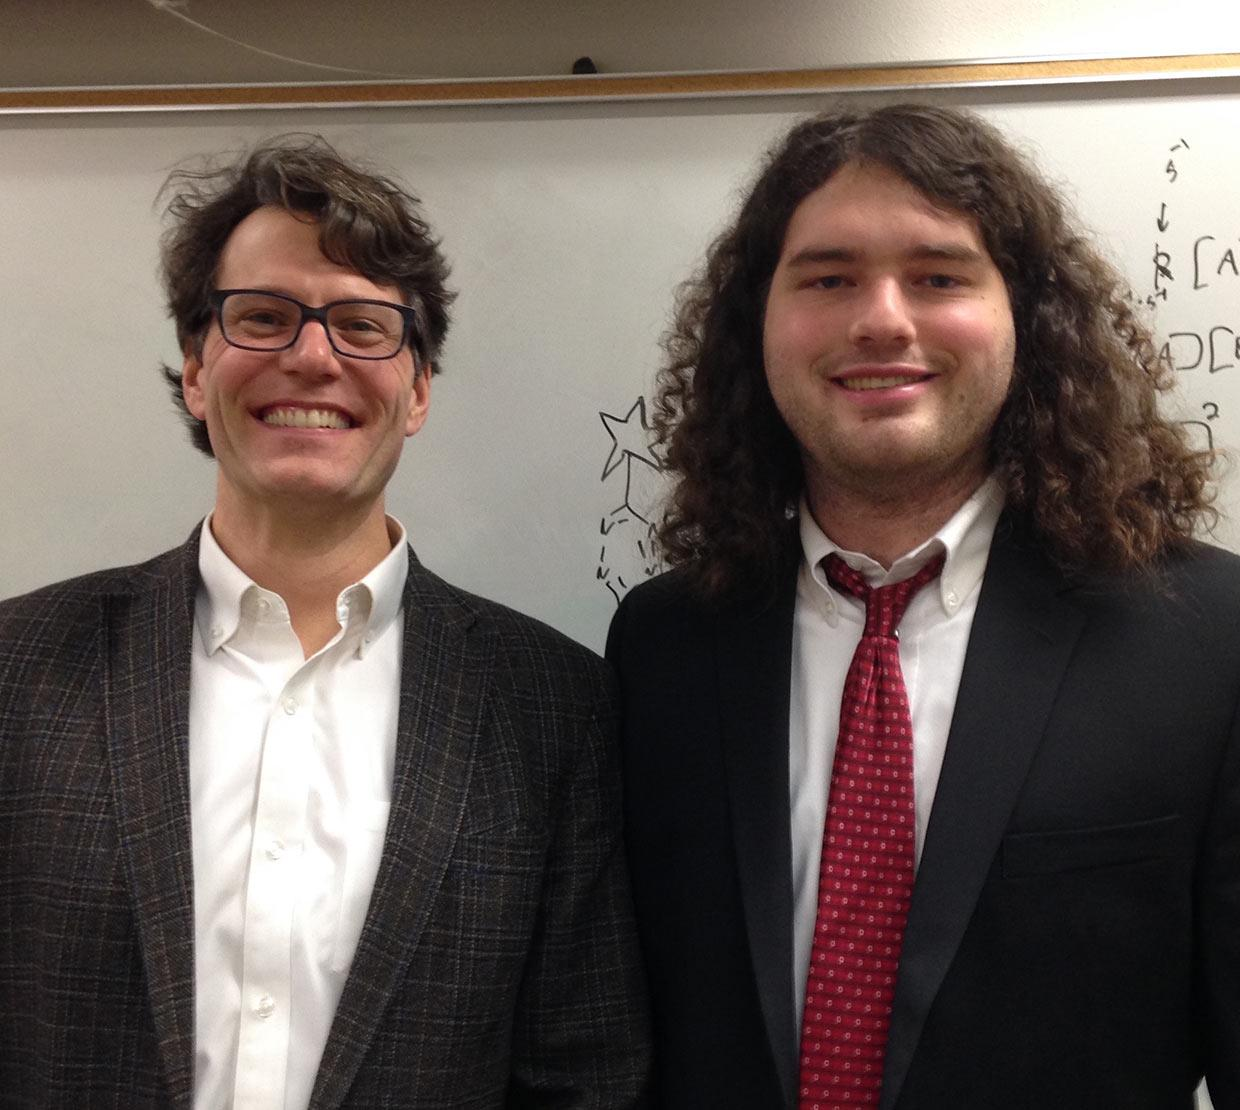 Ryan Mehl and Robert J Blizzard standing in front of white board in suits